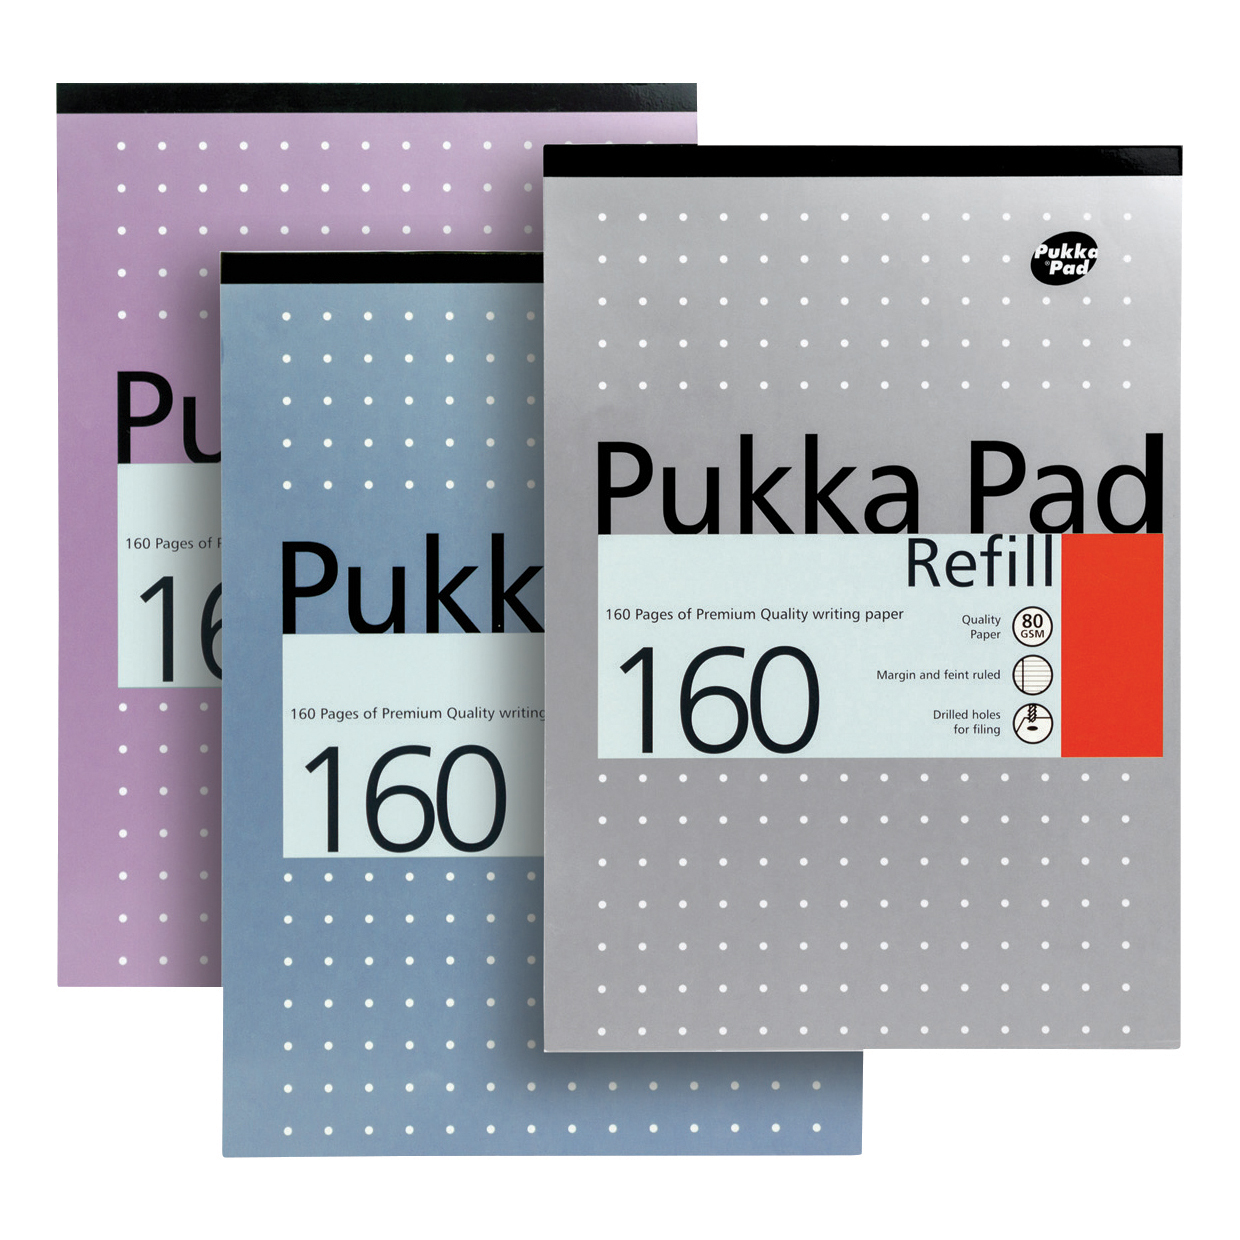 Pukka Pad Refill Pad Headbound 80gsm Ruled Margin Punched 4 Holes 160pp A4 Assorted Ref REF80/1 [Pack 6]